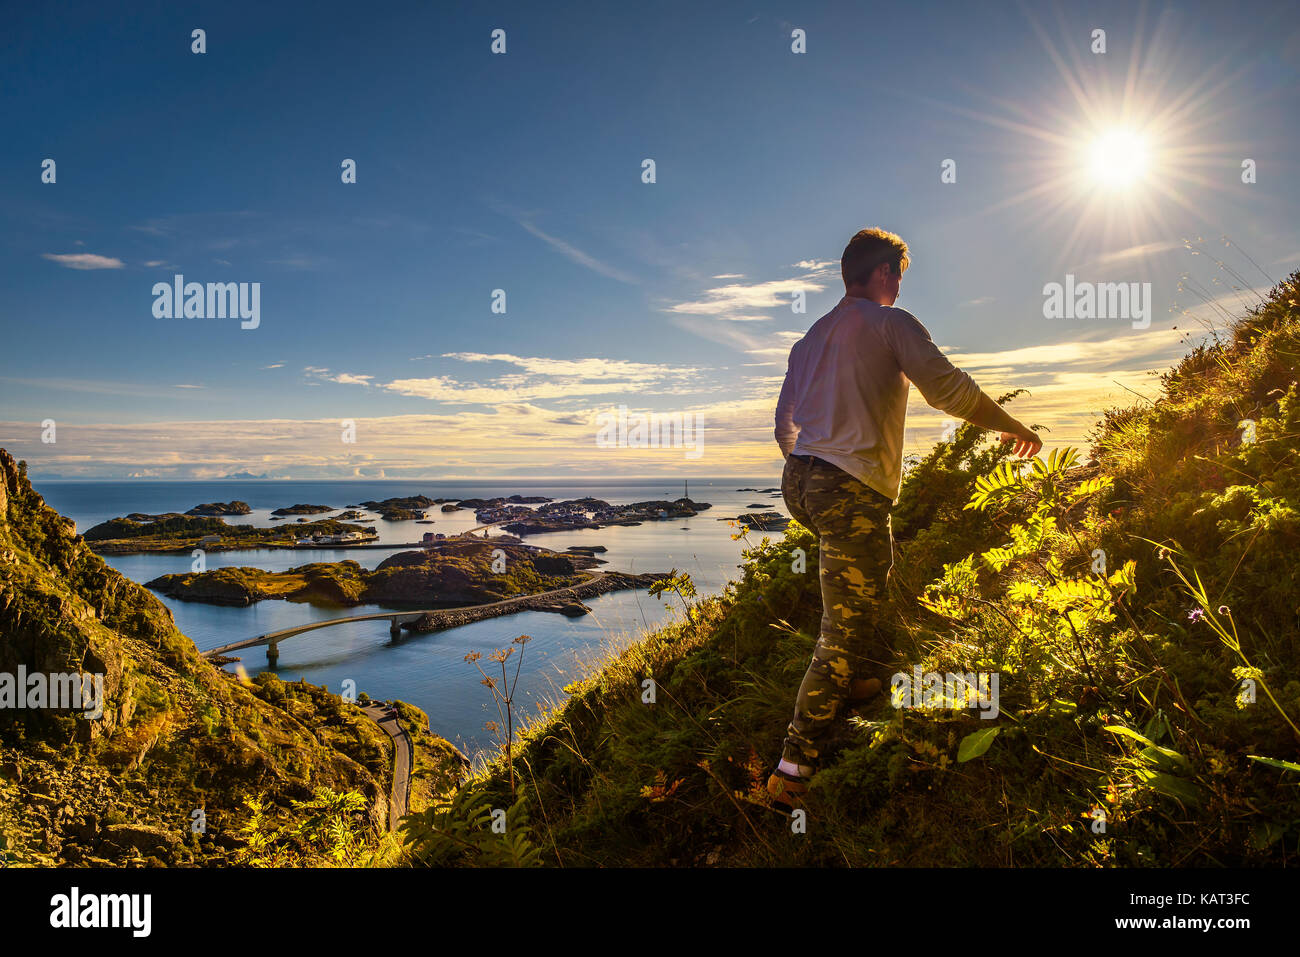 Male hiker going to the top of mount Festvagtinden with views over the village of Henningsvaer on Lofoten islands in Norway Stock Photo